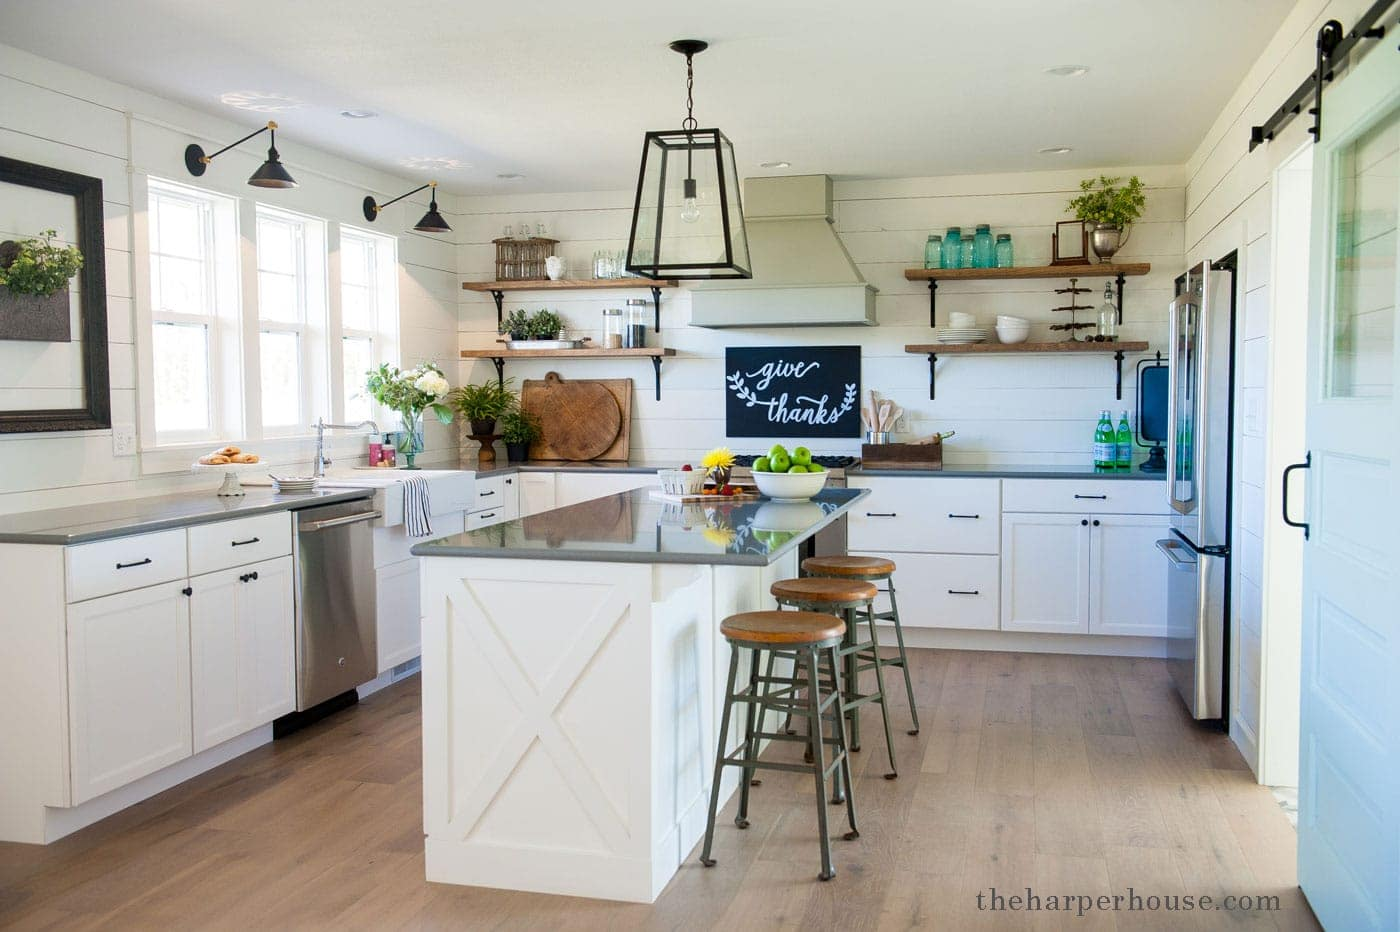 sharing our fixer upper inspired farmhouse kitchen reveal featuring white shaker cabinets, white oak floors, farmhouse sink, open shelves, industrial lighting, & gray quartz countertops| theharperhouse.com